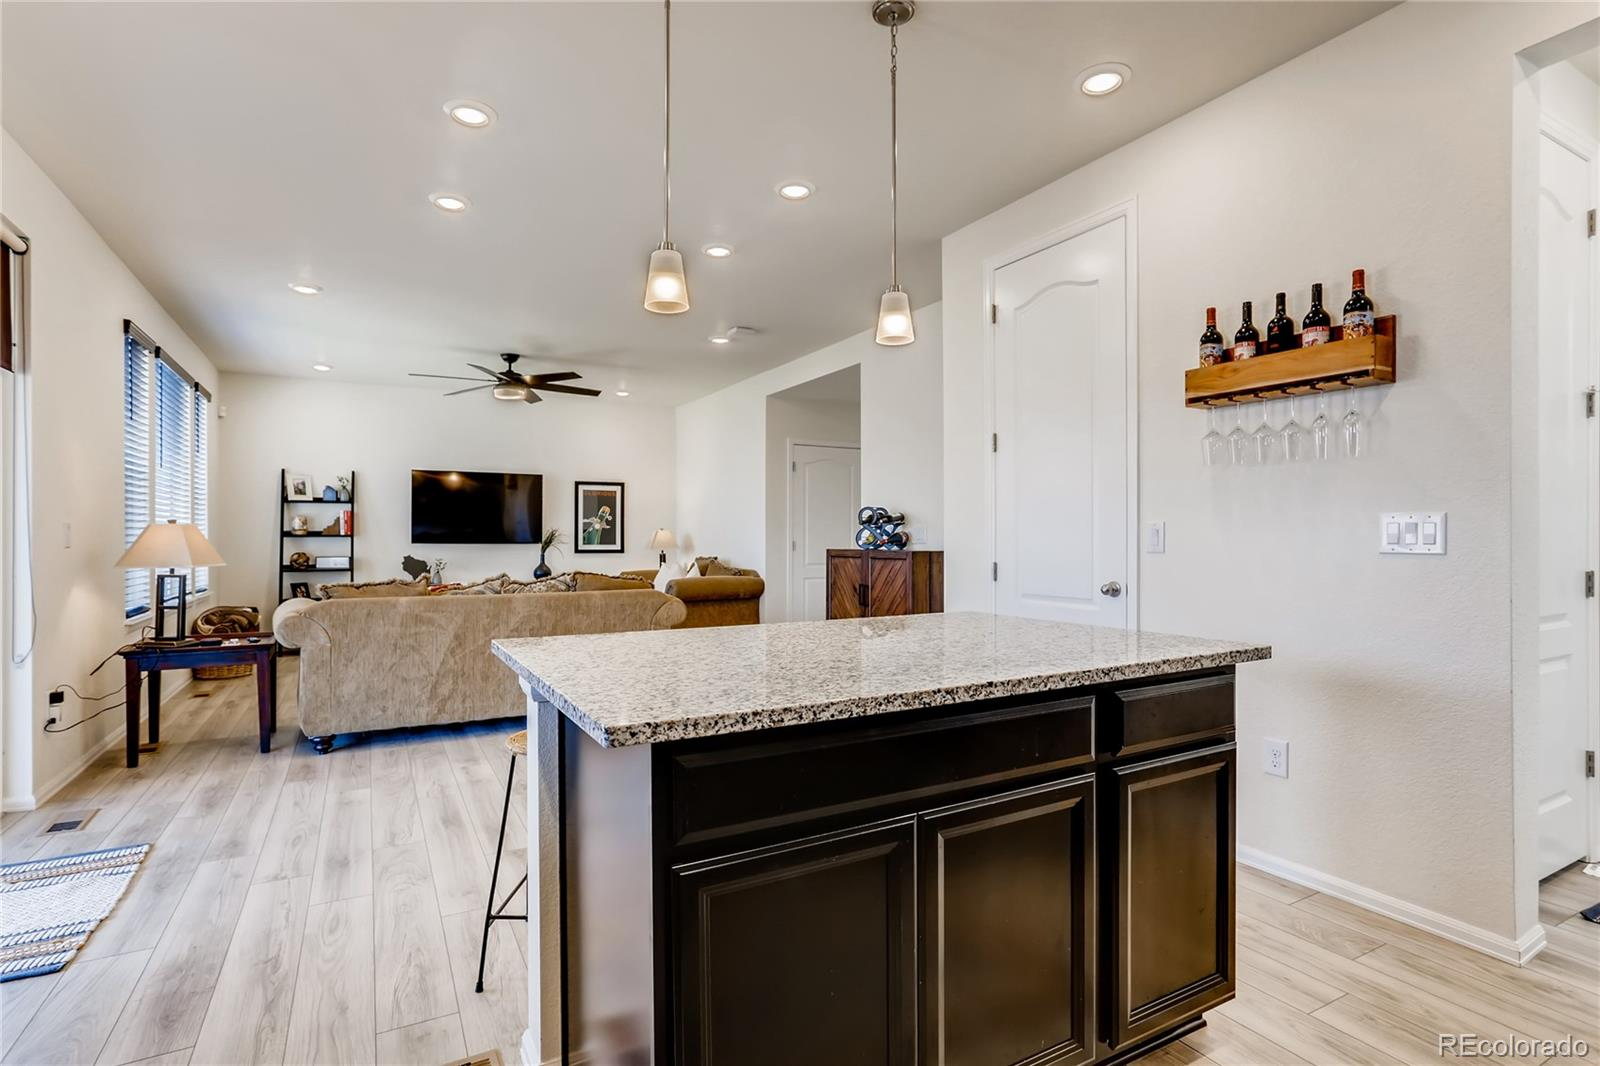 MLS# 2145354 - 11 - 26325 E Canal Place, Aurora, CO 80018